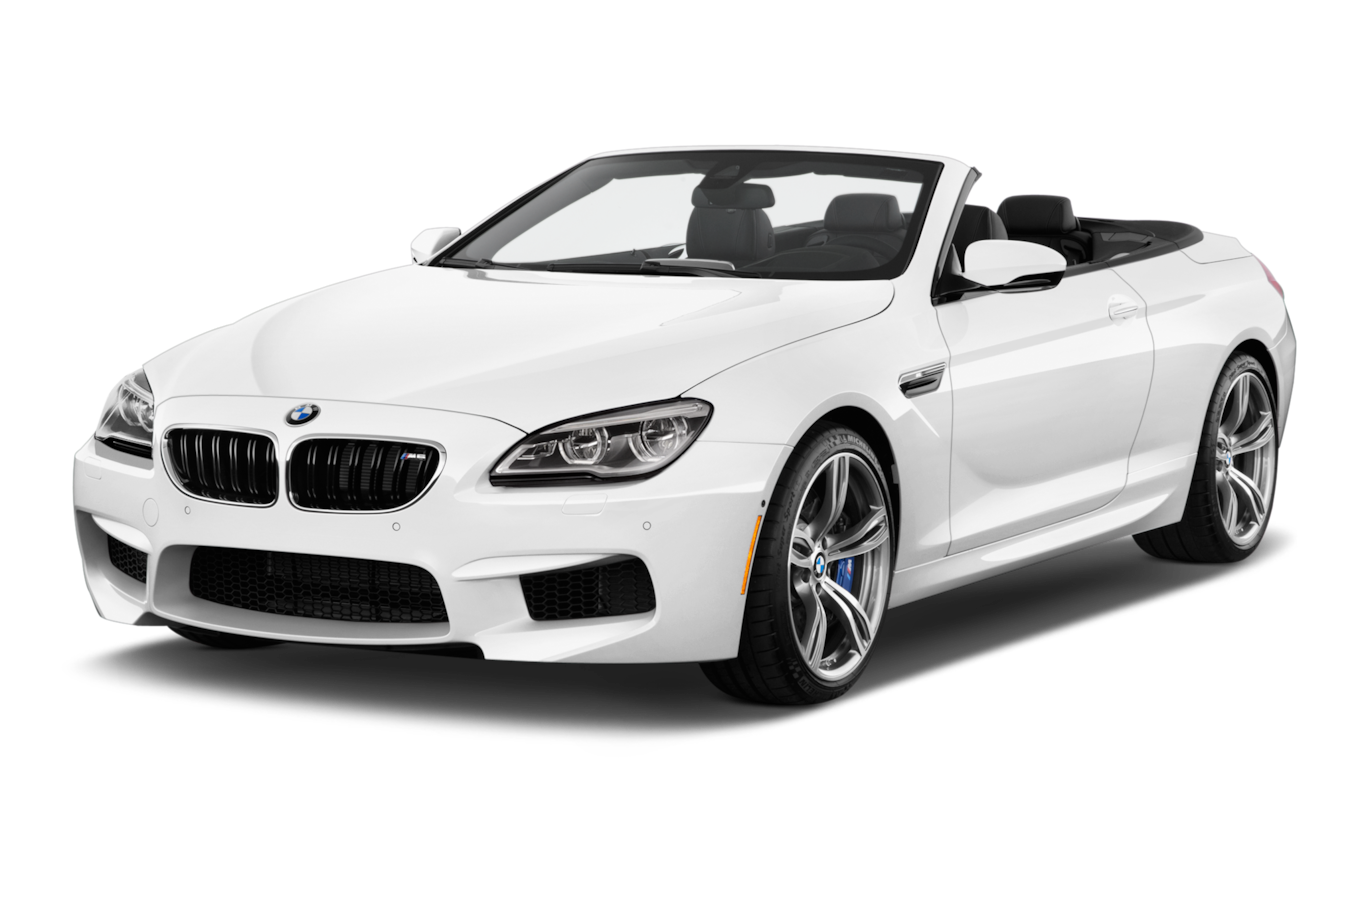 bmw reviews and rating motor trend #22475